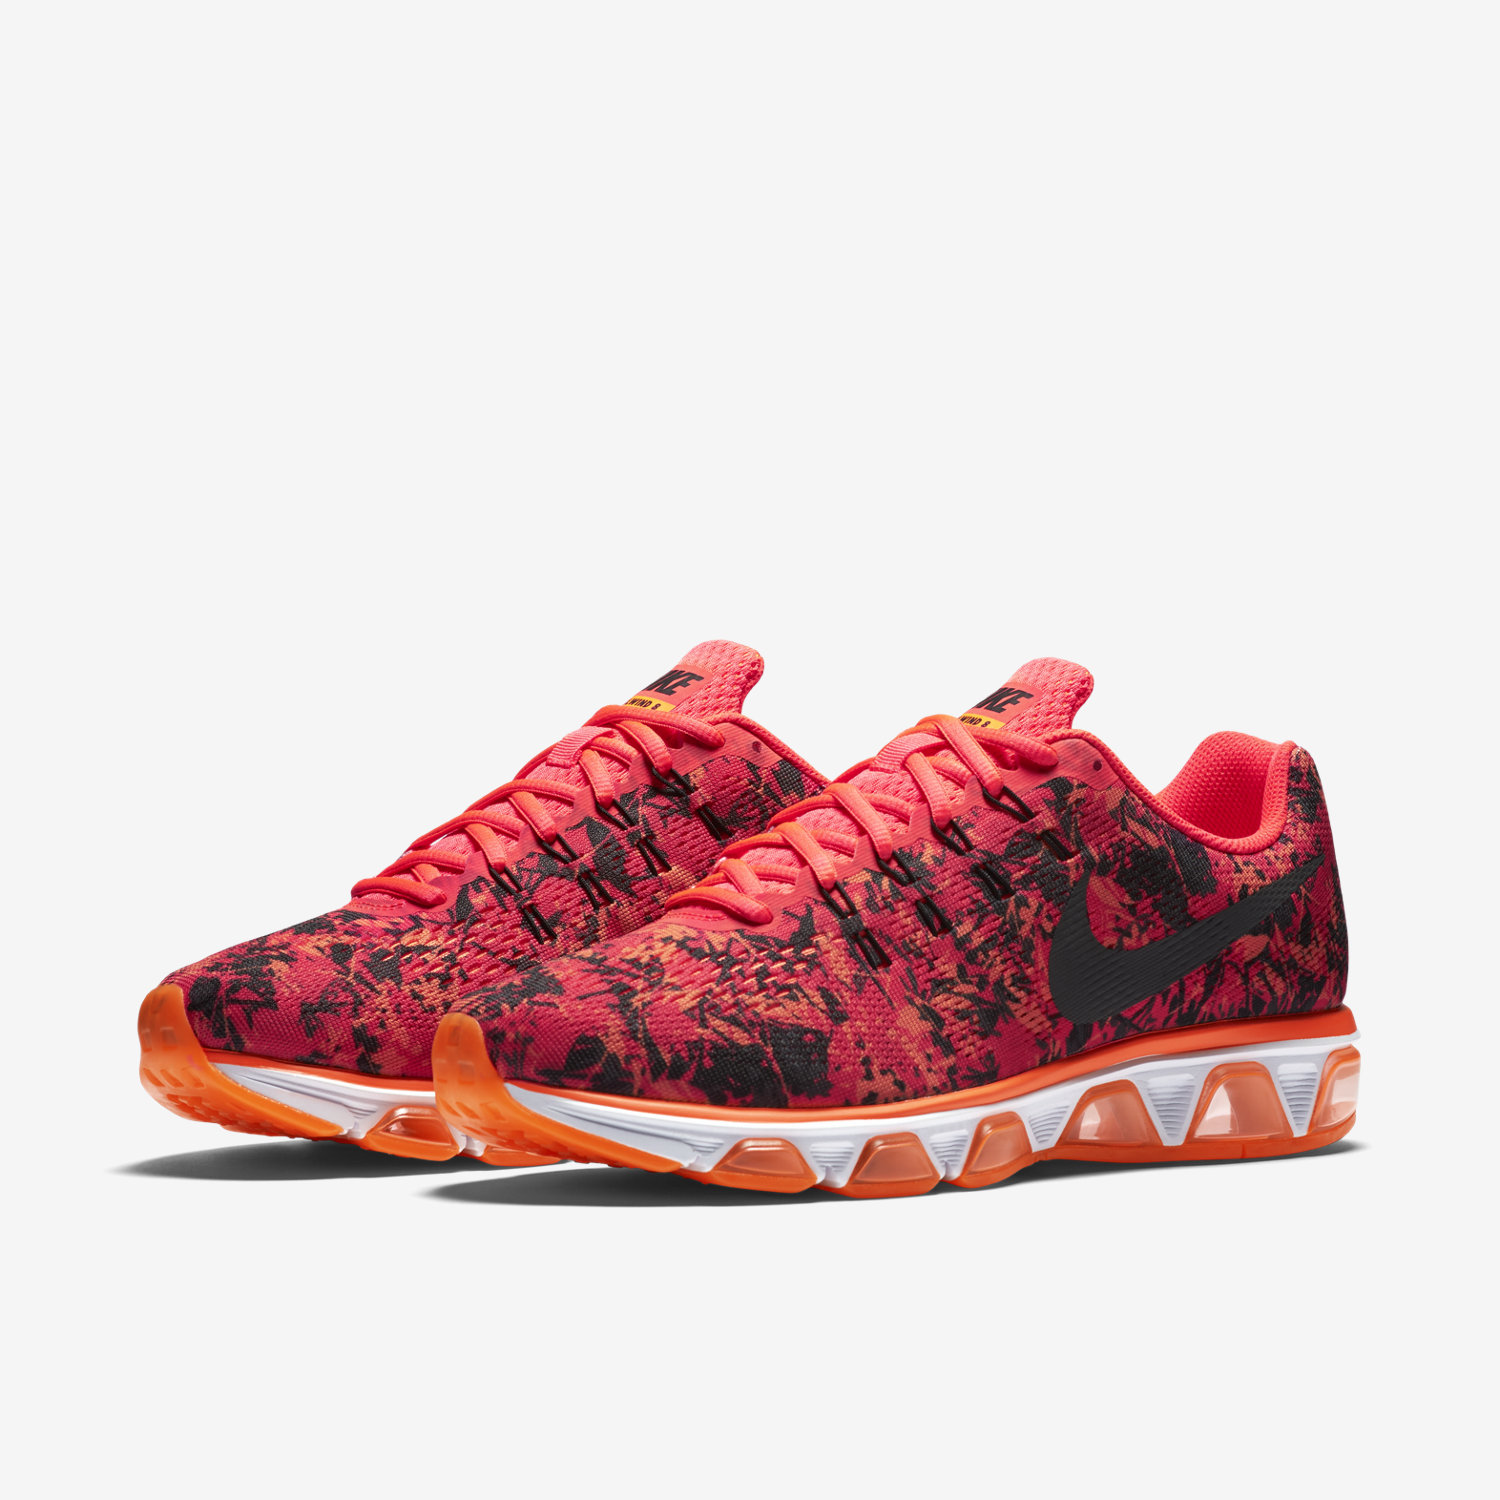 WMNS Nike Air Max Tailwind 7 [683635 006] Running Black/Flash